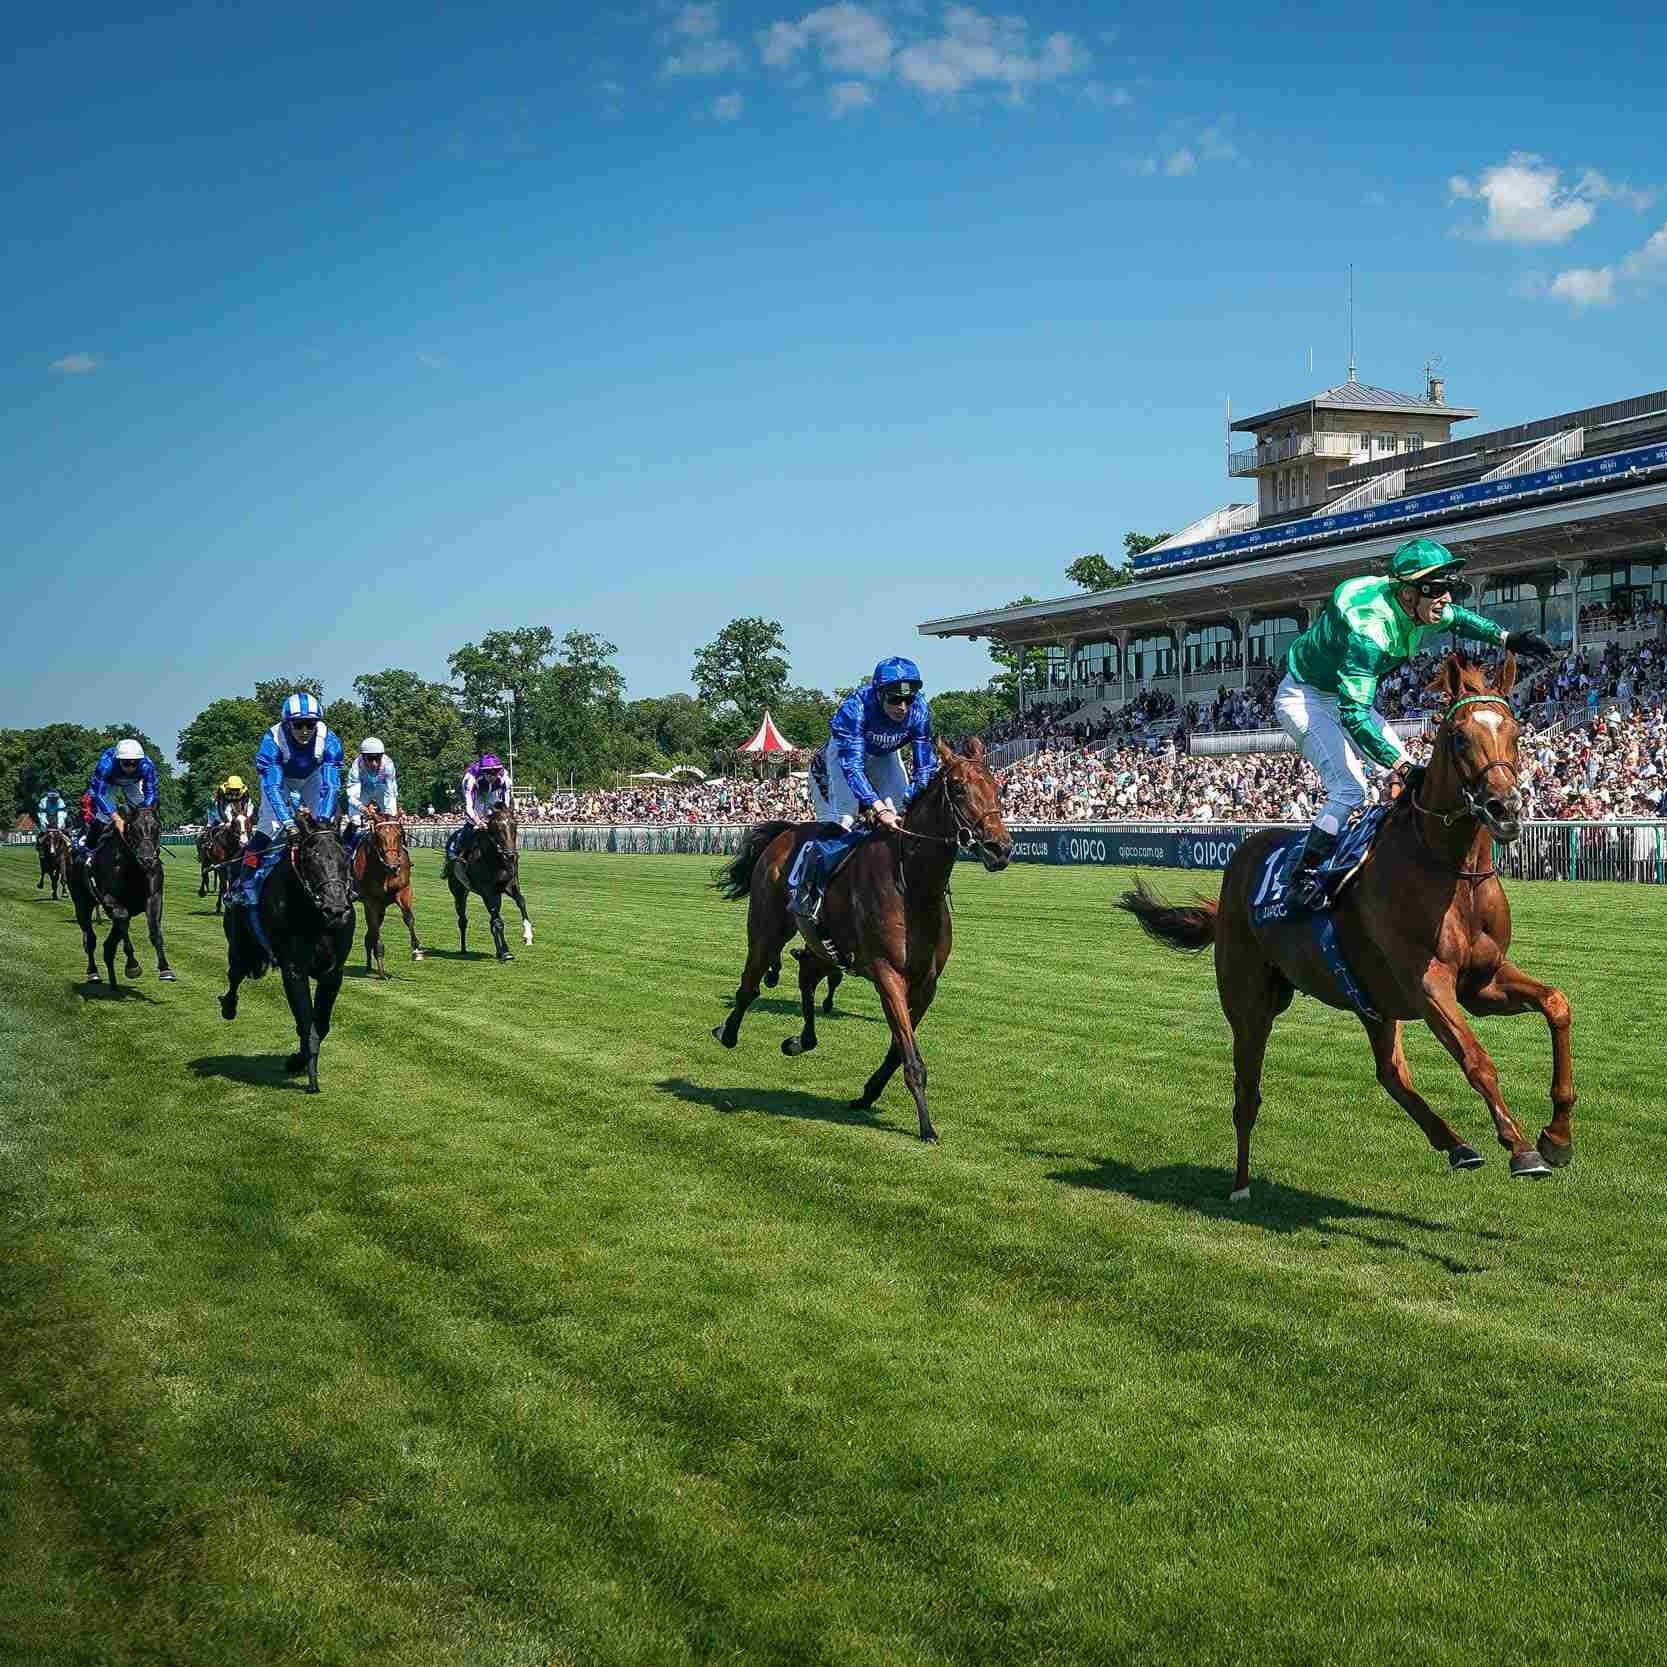 Motamarris (right, blue and white cap) ran a good race in the French Derby